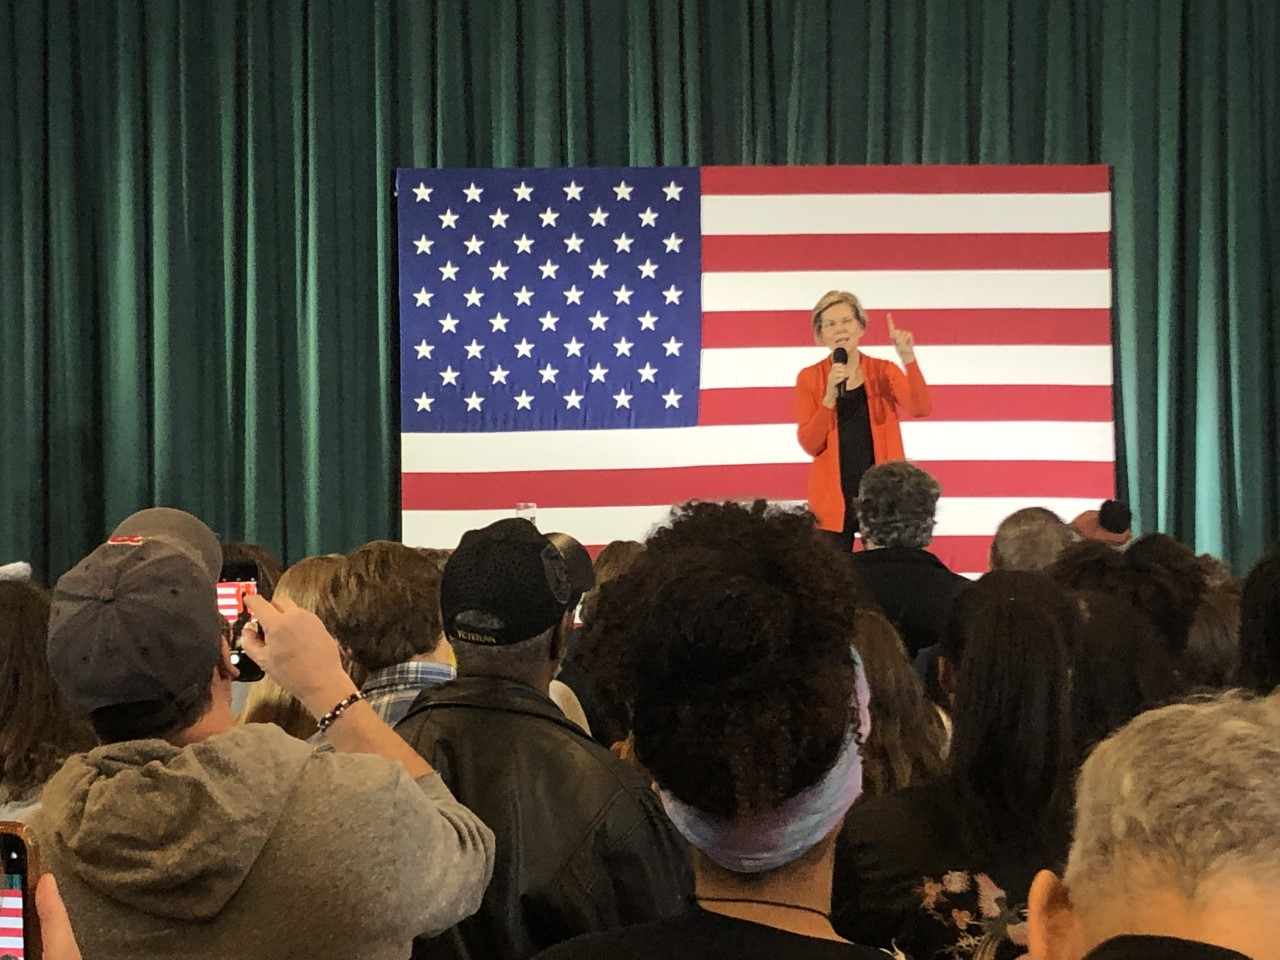 Elizabeth Warren holds town hall in Grinnell, talks health care and two-cent wealth tax